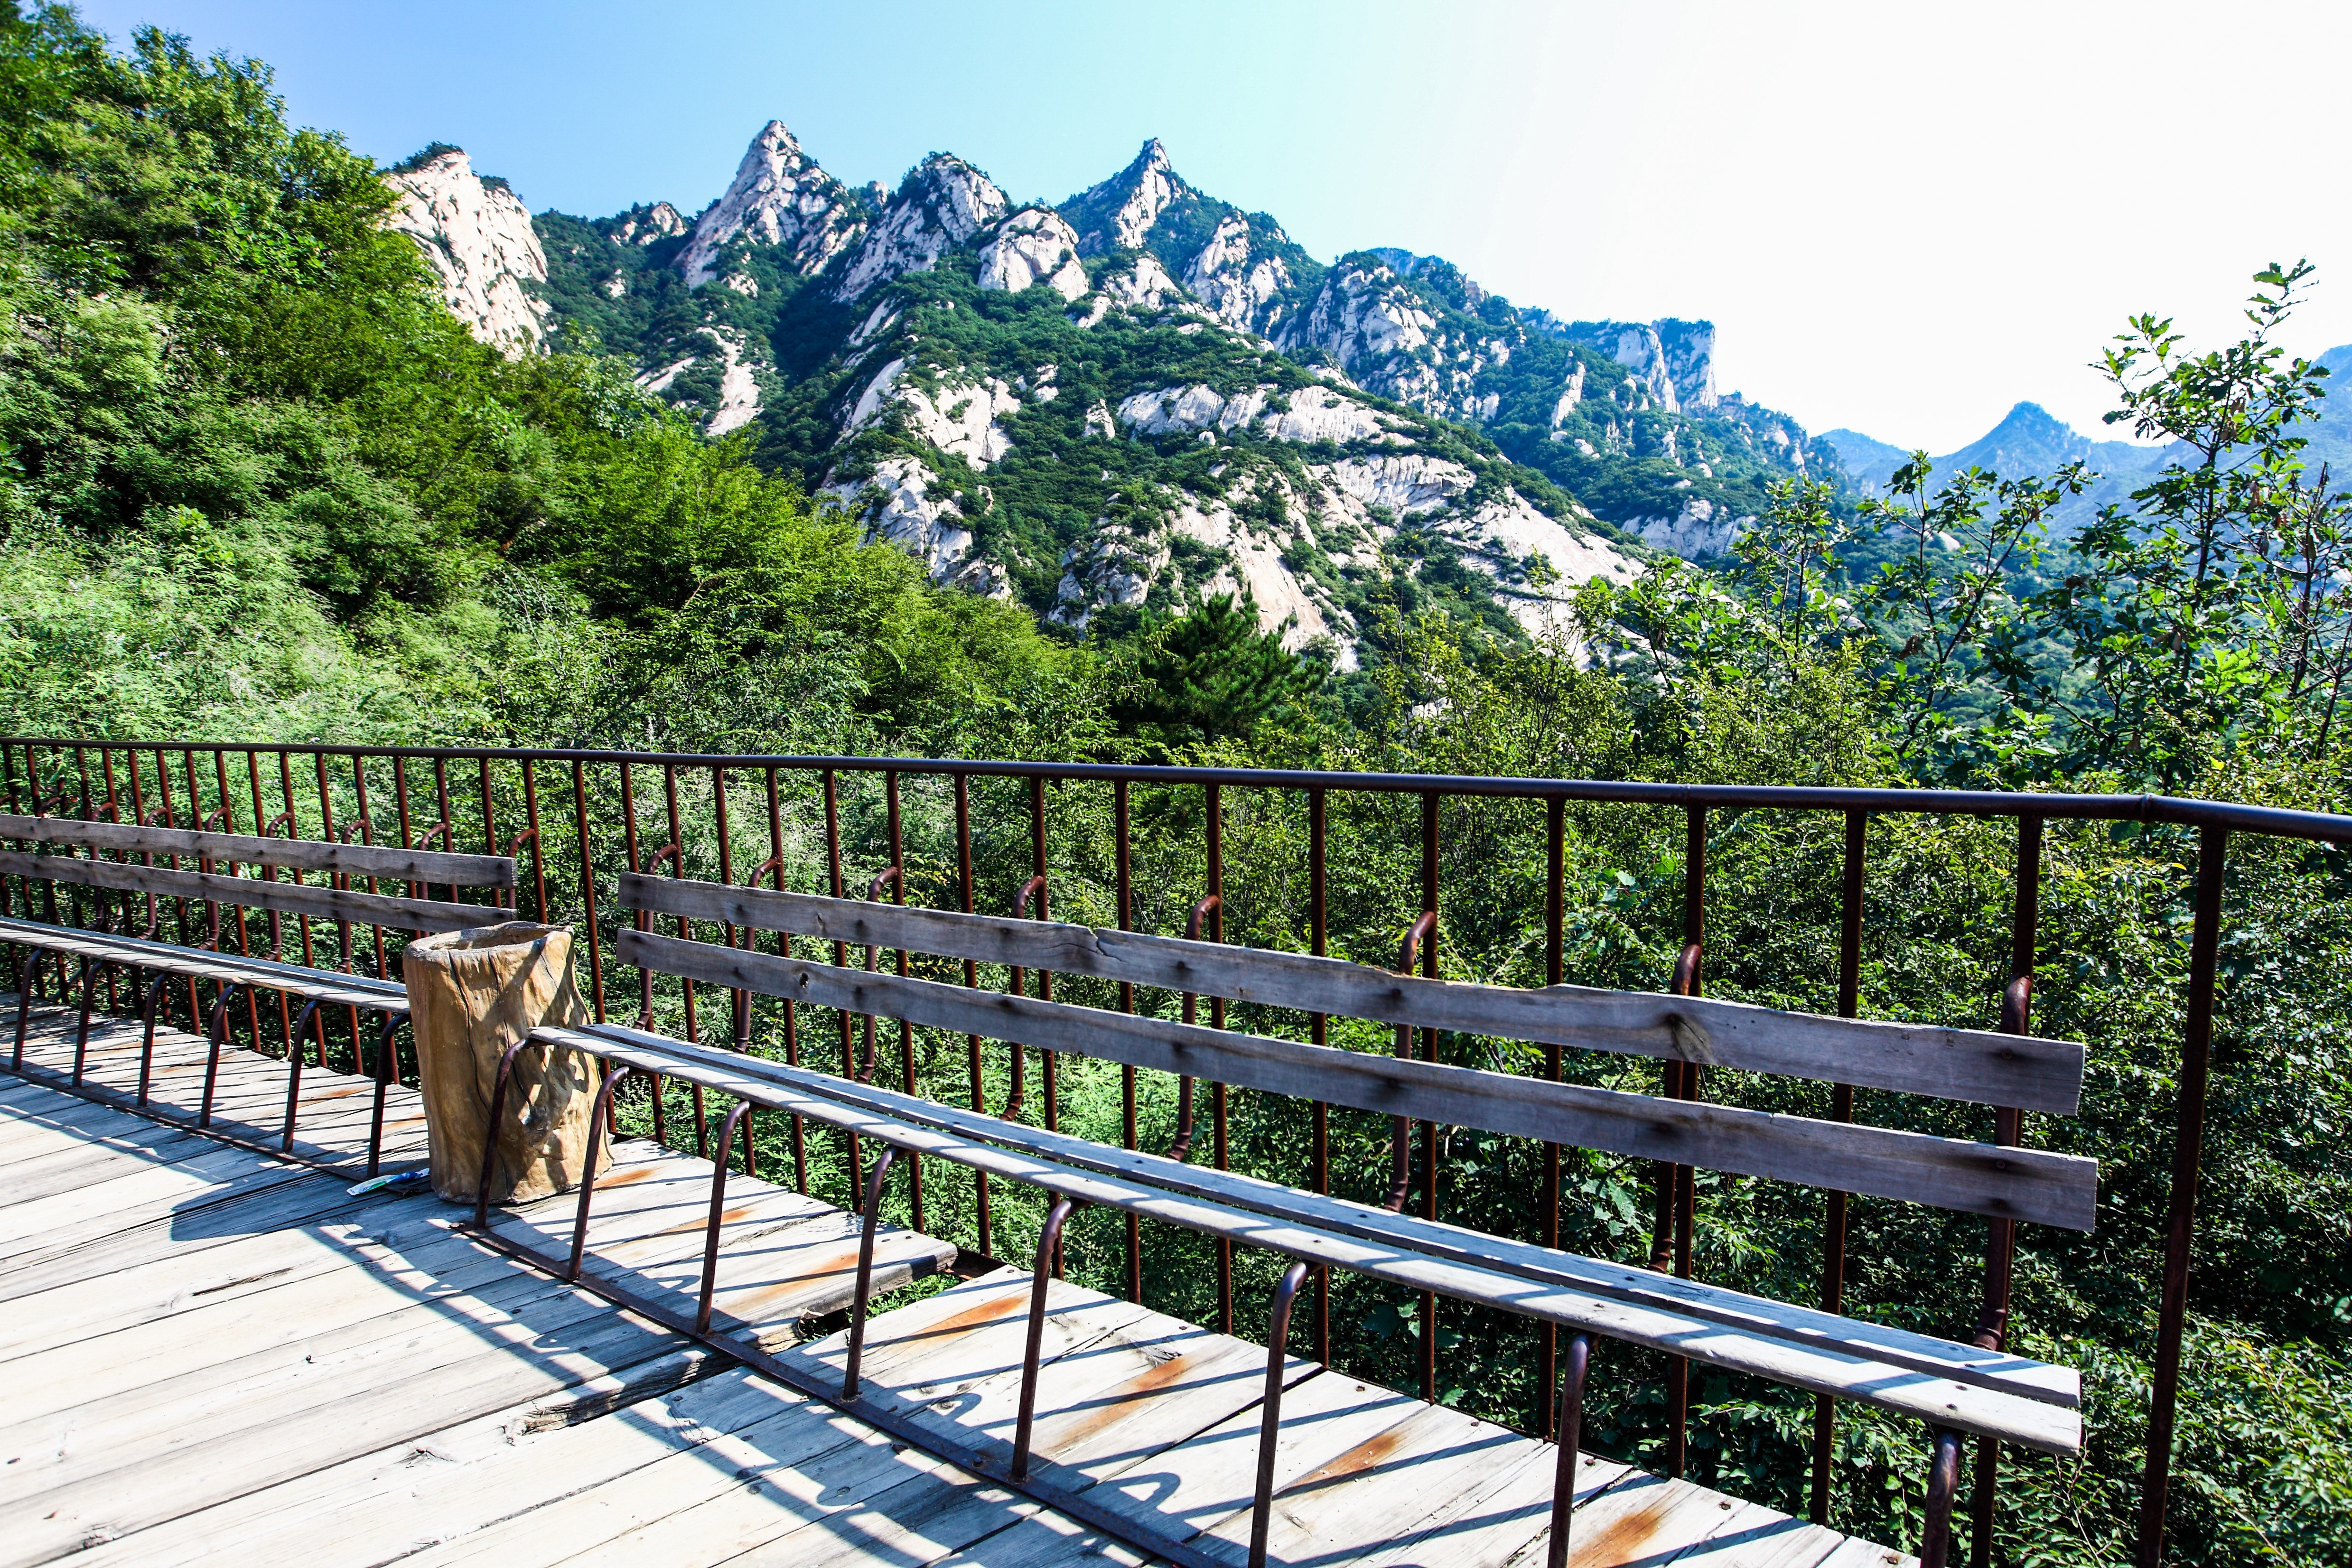 Summer Vacation Ideas: National Parks and Resorts near Beijing 2020